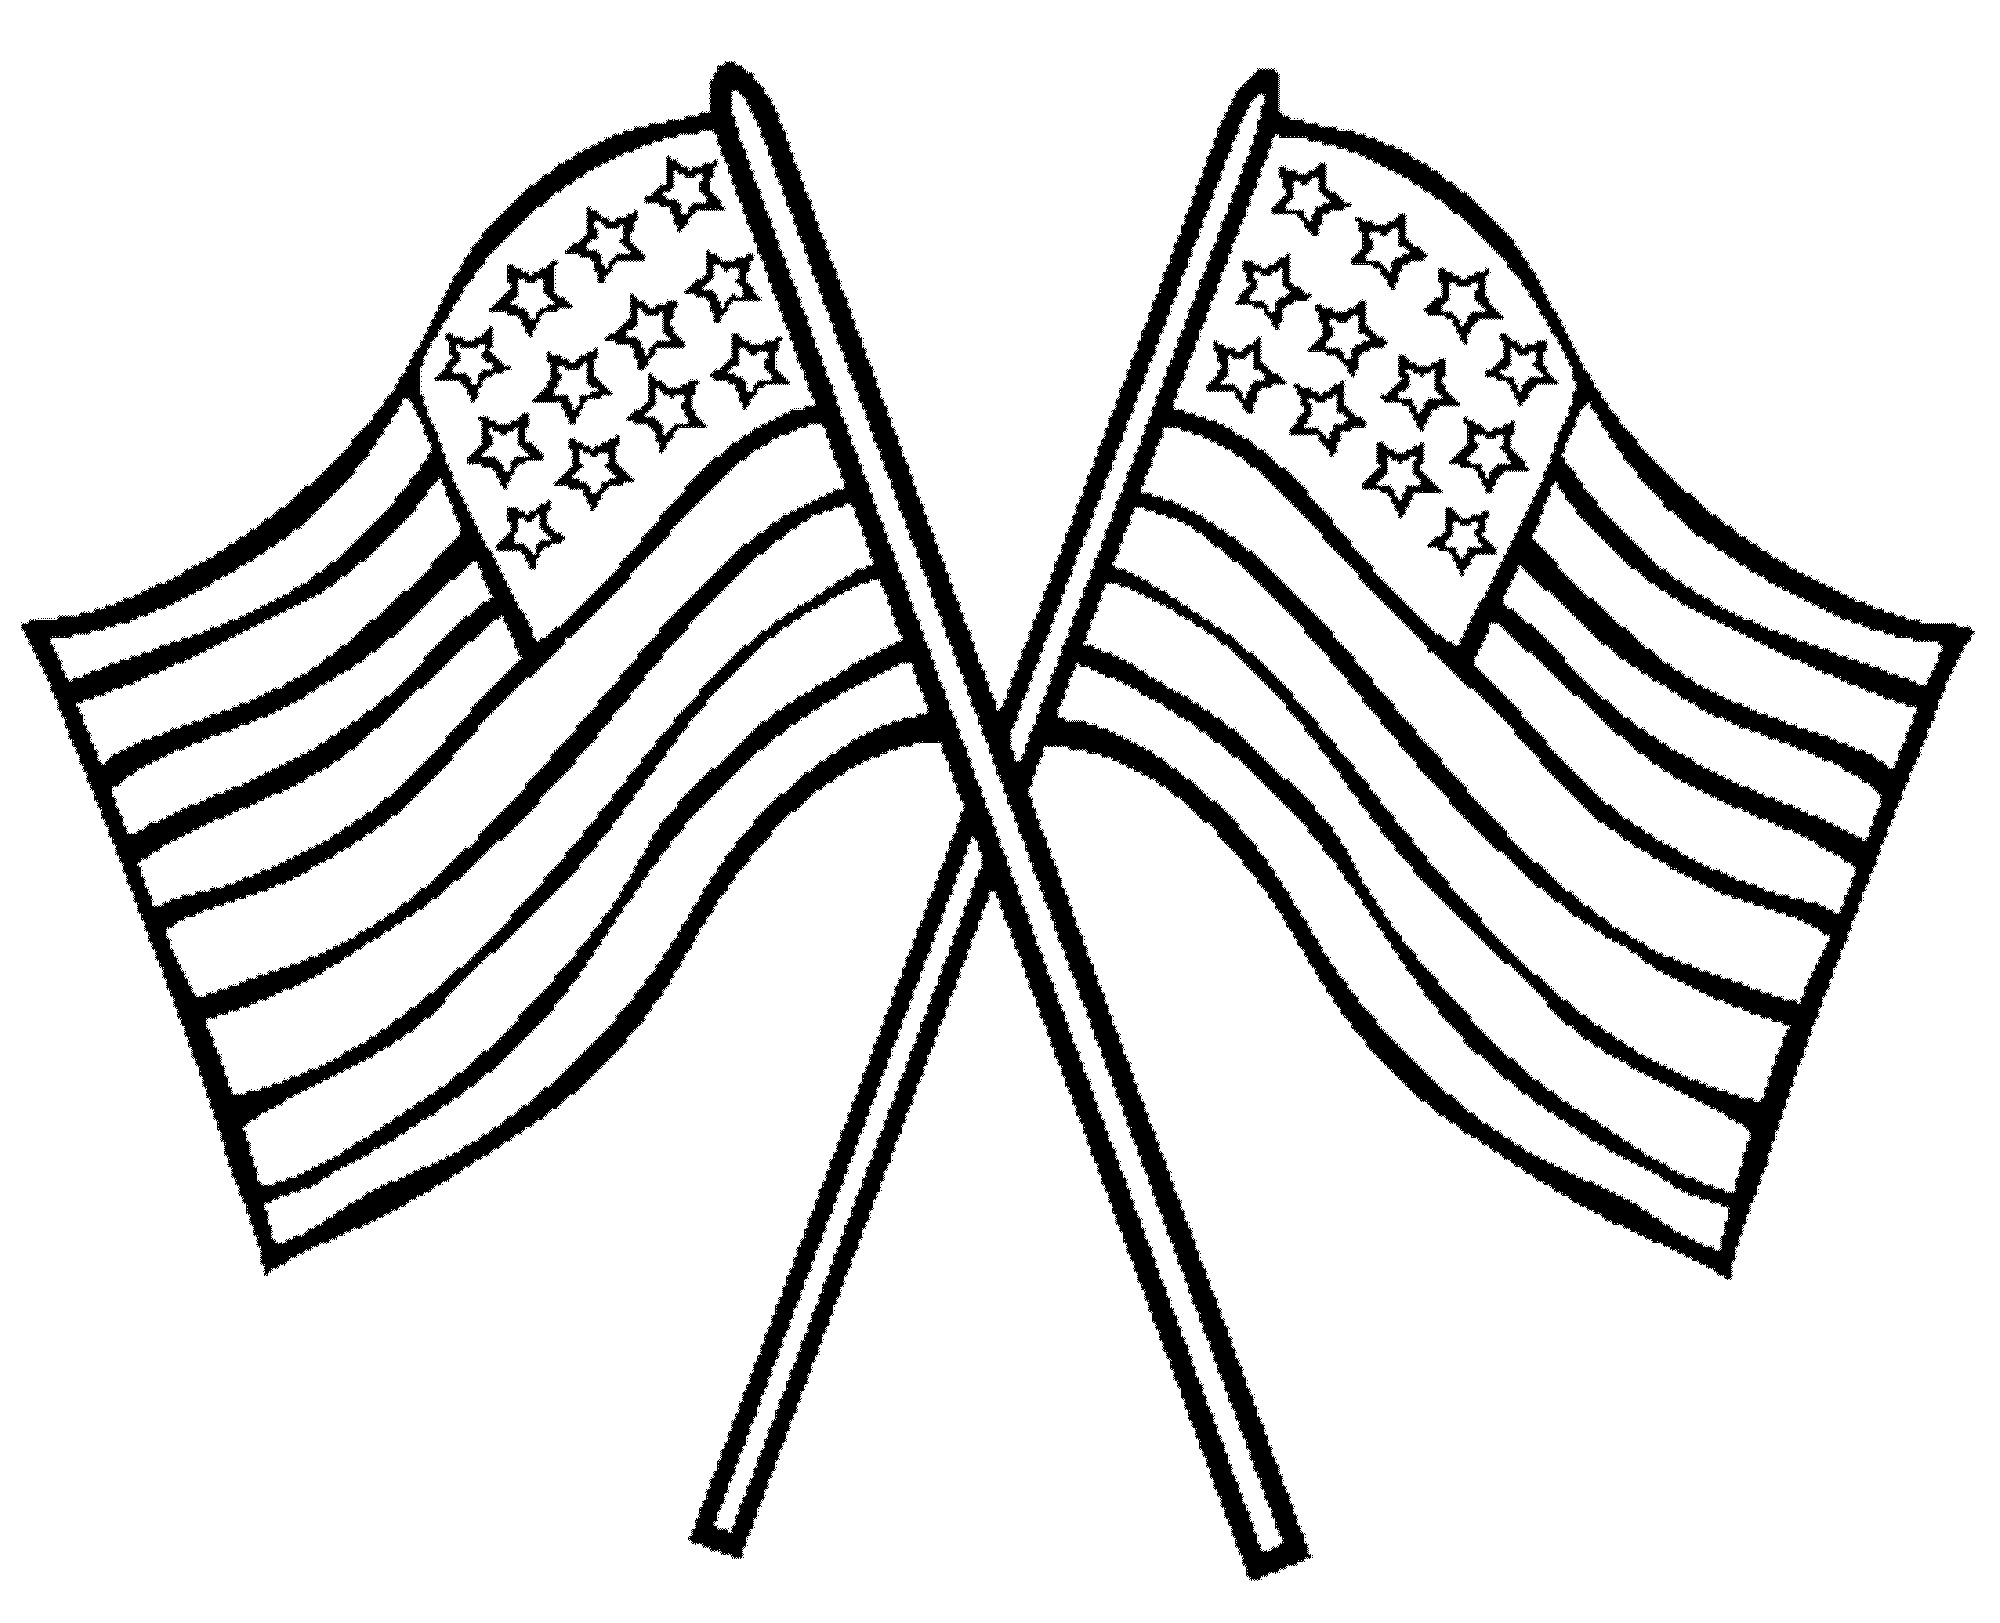 2000x1623 Usa Flag Coloring Page Unique Canadian Flag Drawing